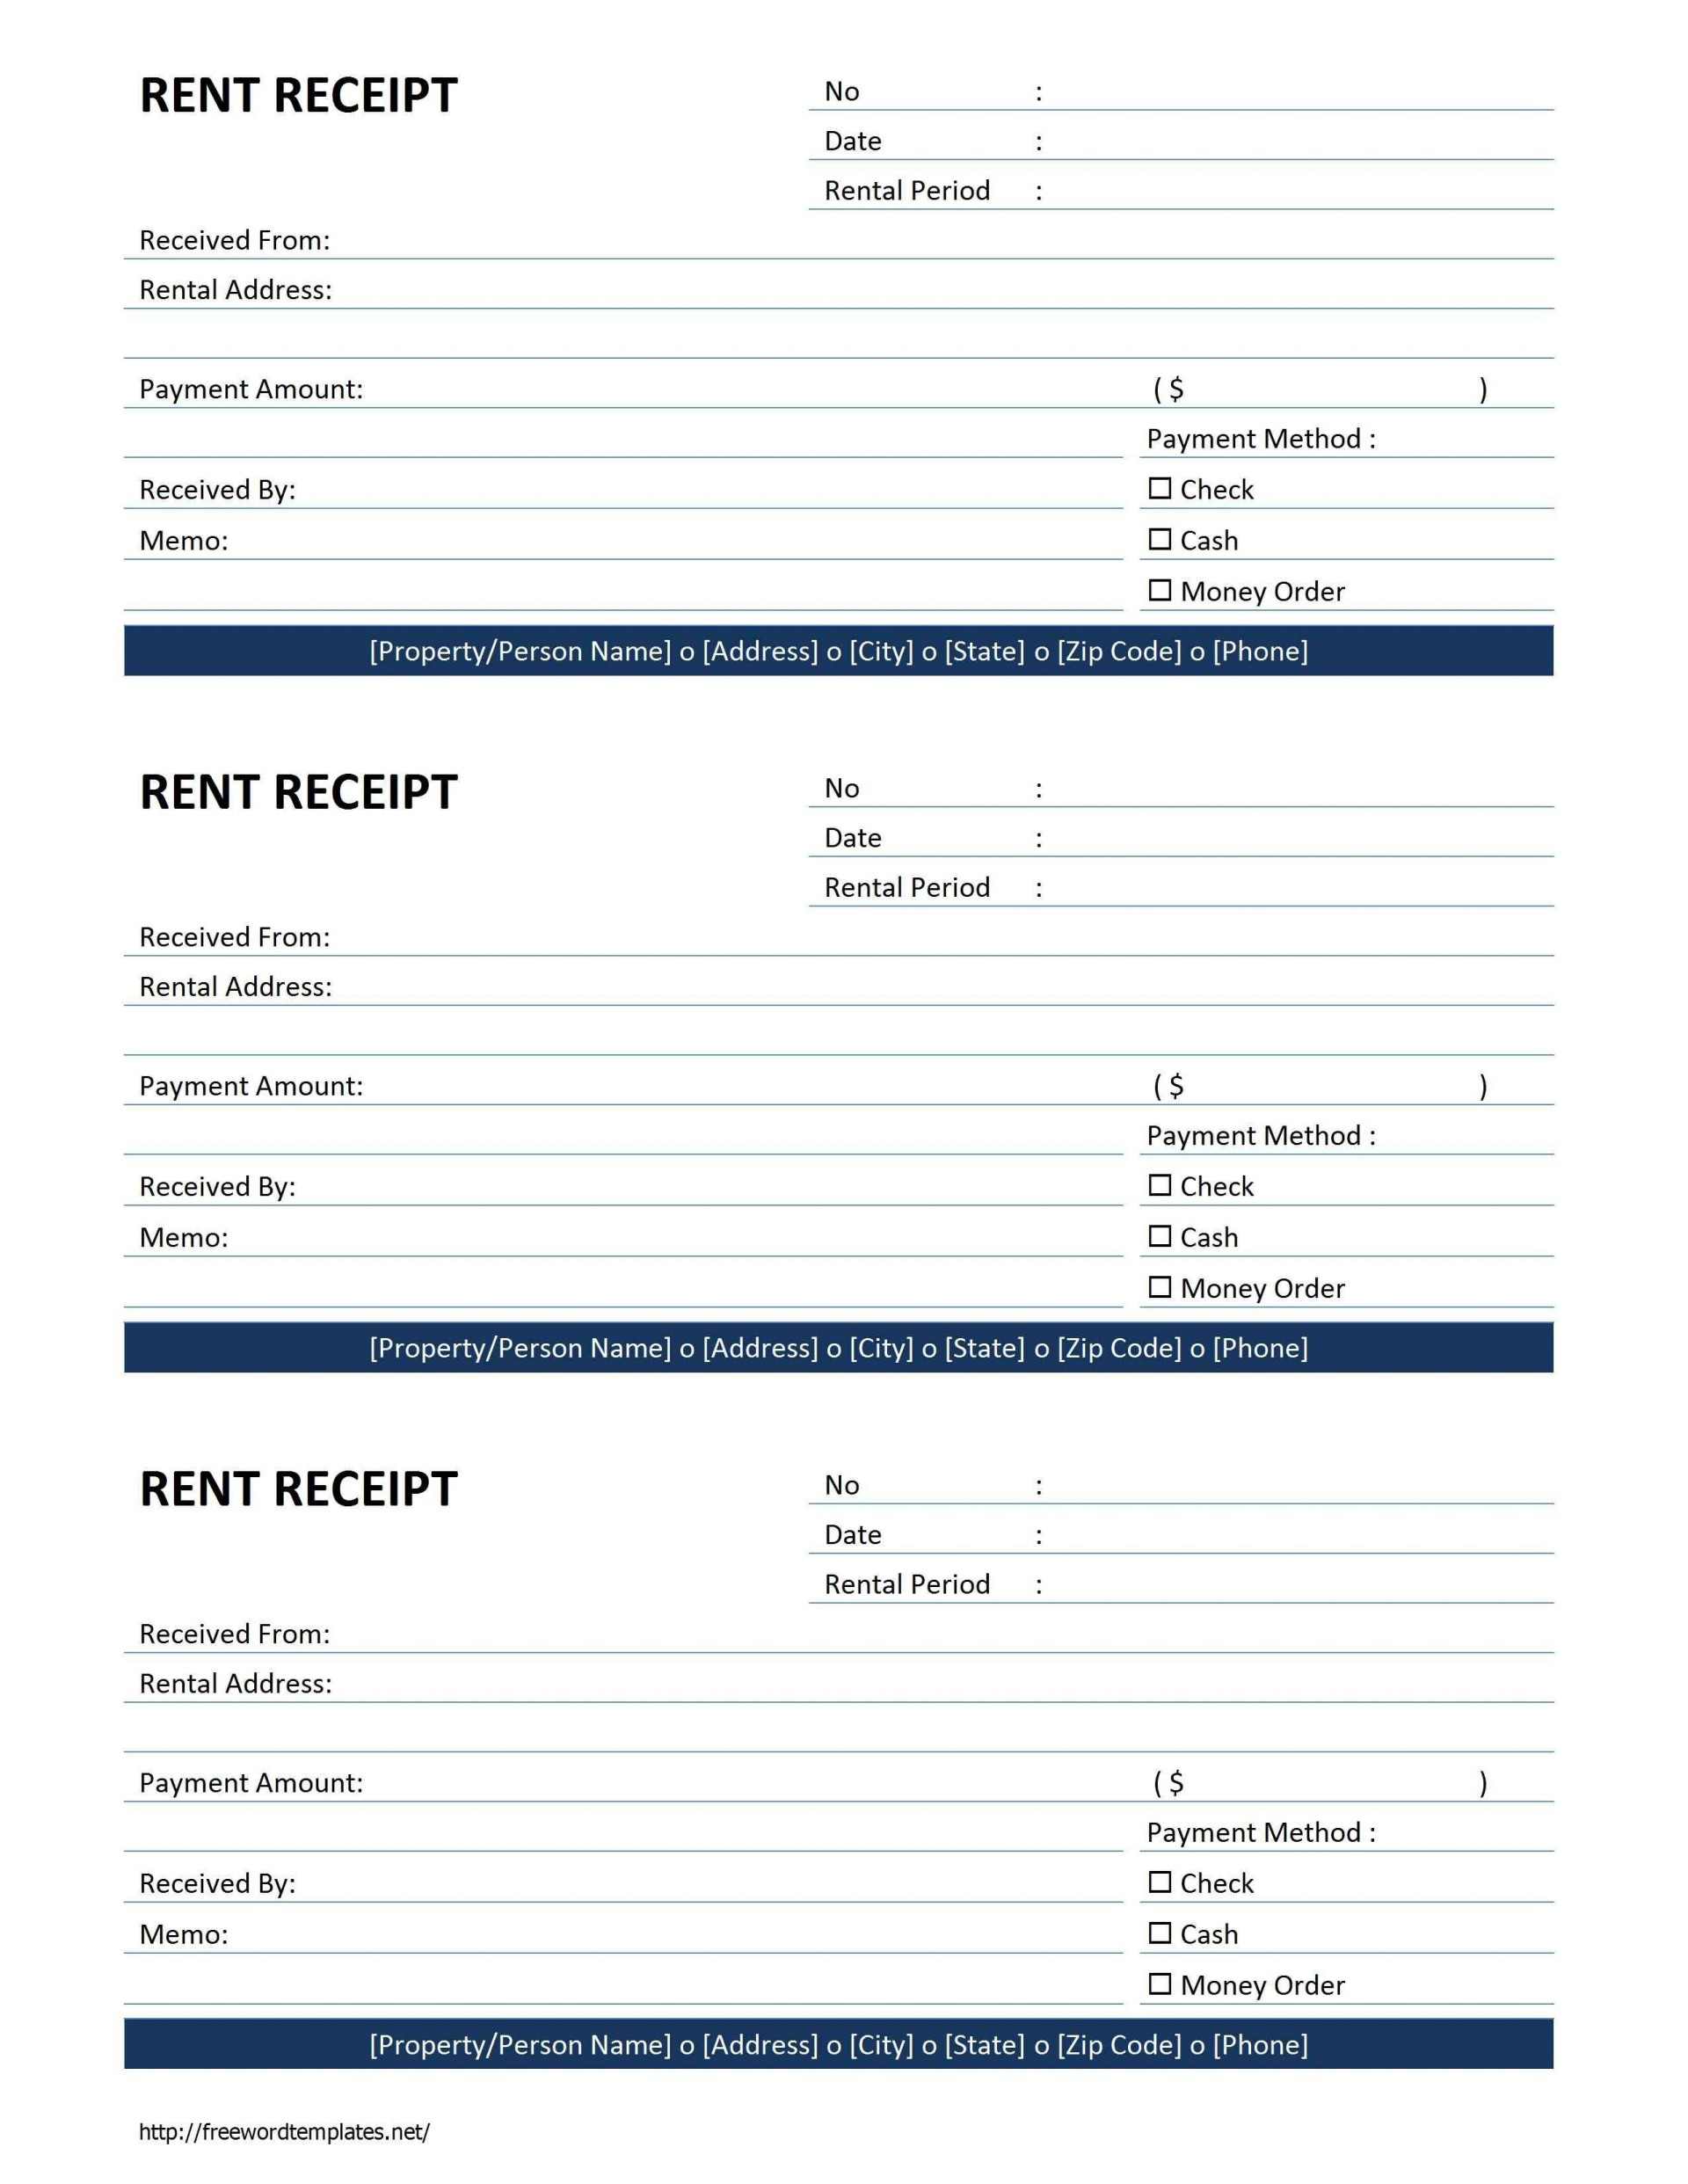 000 Awful Sample Rent Receipt Word Doc Design 1920